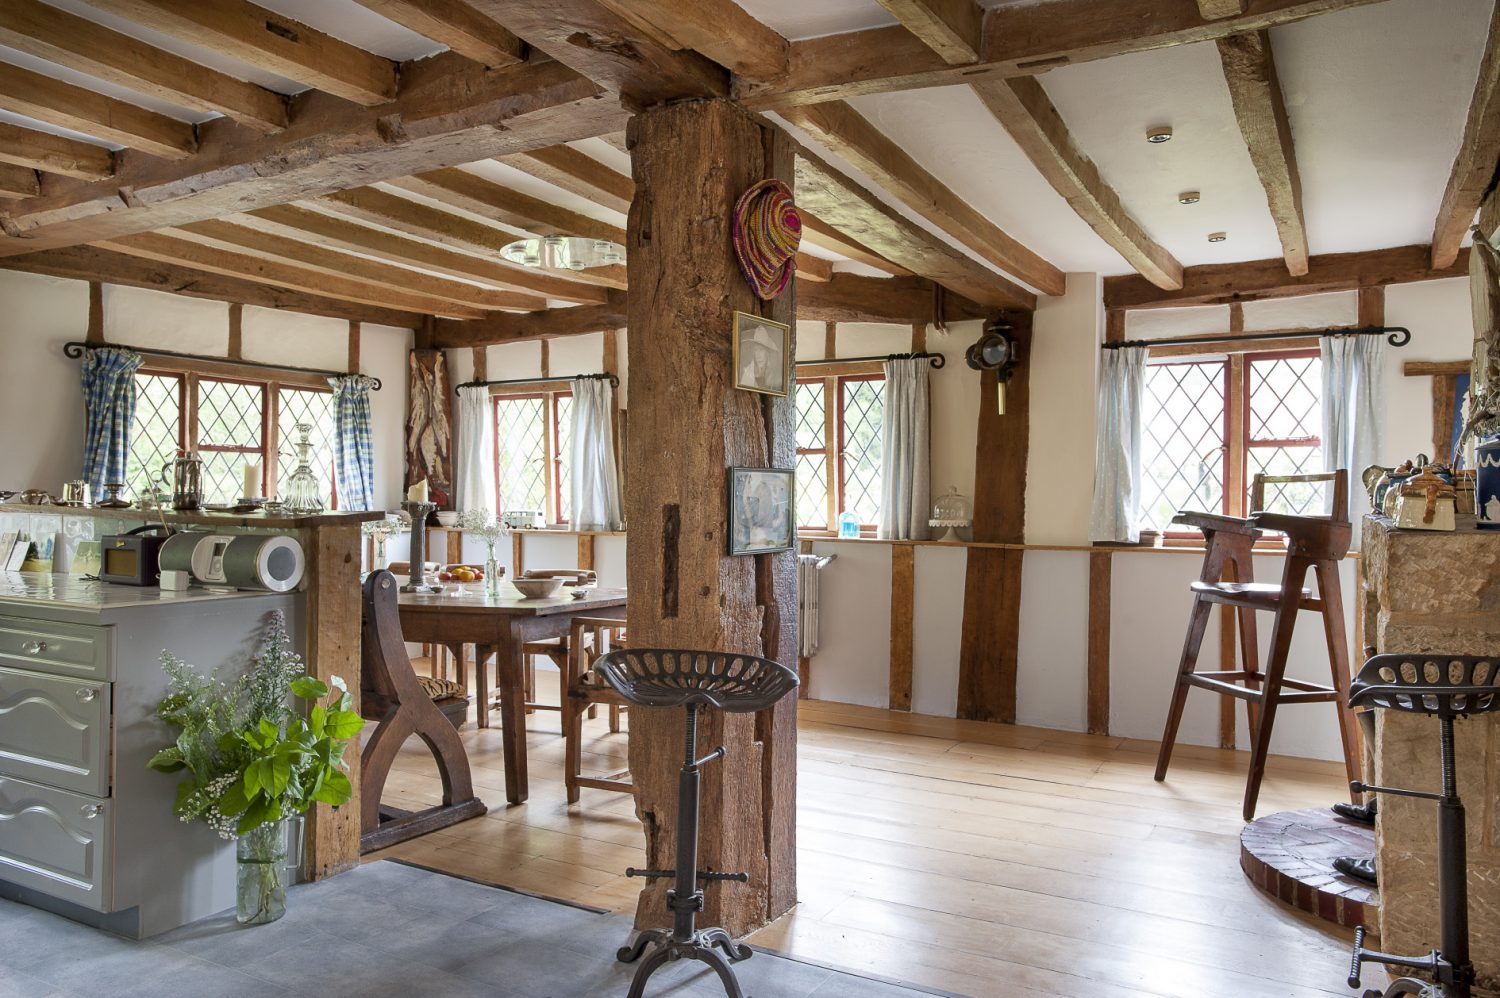 Leading from the hall – which is the heart of the house – is the traditional farmhouse kitchen, the original and oldest part of the house. Enclosed with massive honey coloured timbers and diamond leaded windows to three sides, this expansive open plan room combines the light and cheerful breakfast / dining area with the generously sized kitchen